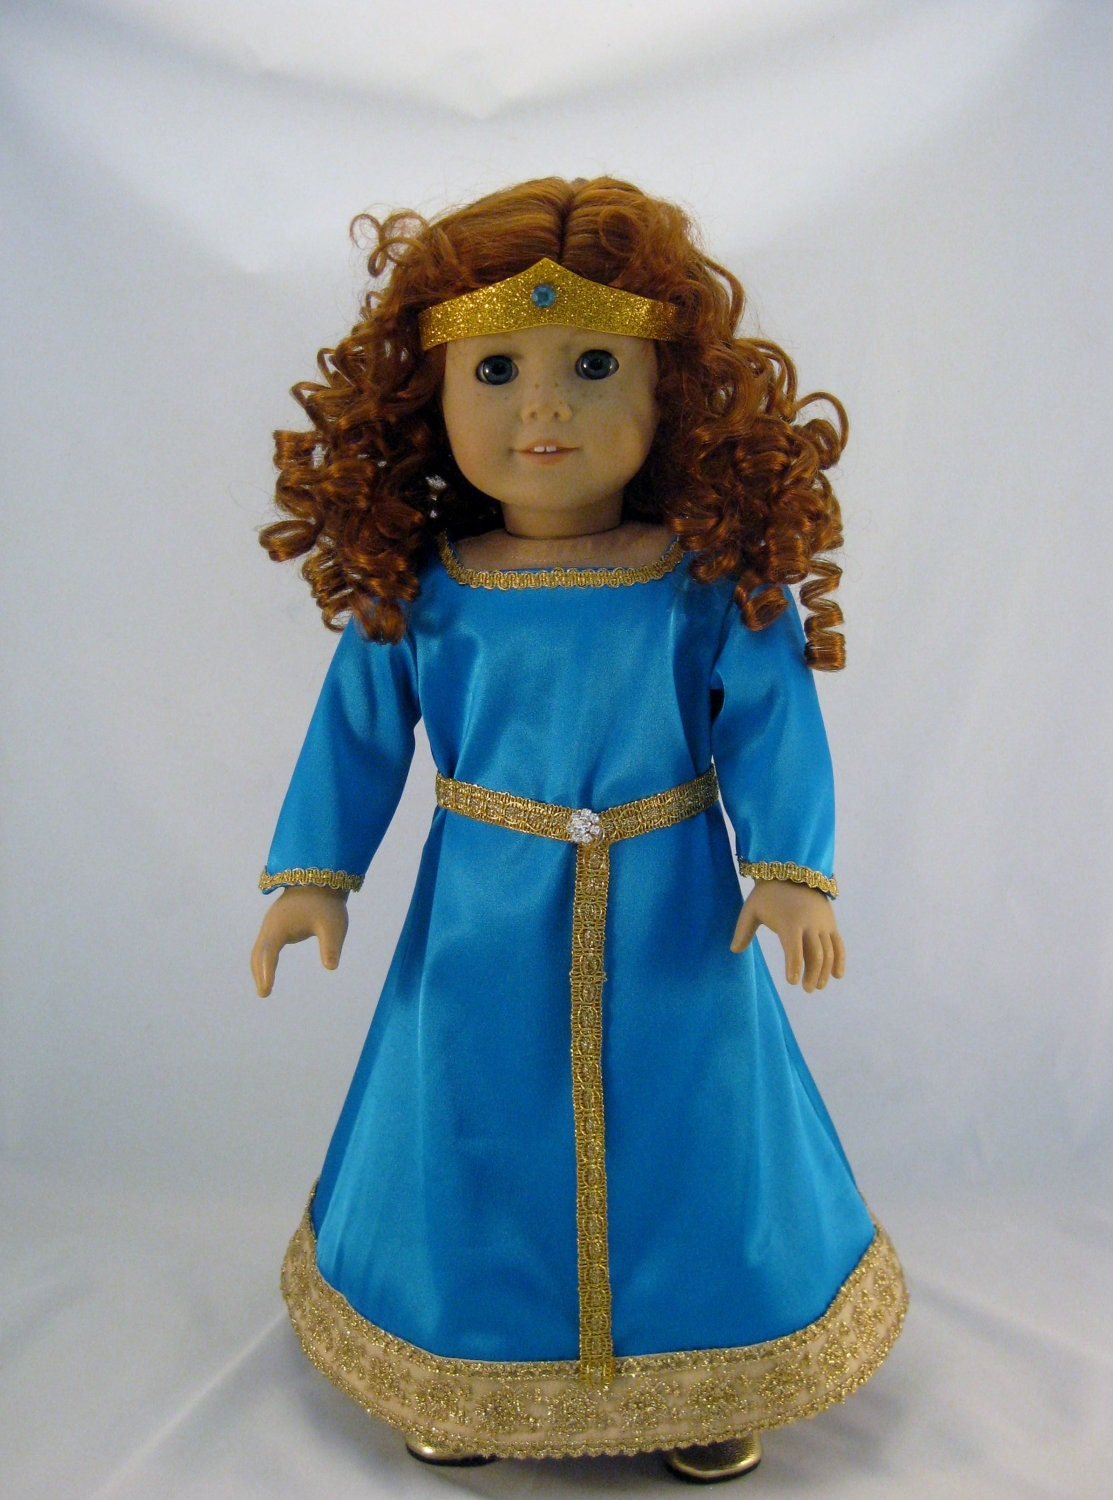 Merida Inspired Doll is a Rewigged American Girl Doll with Handmade Merida Style Dress